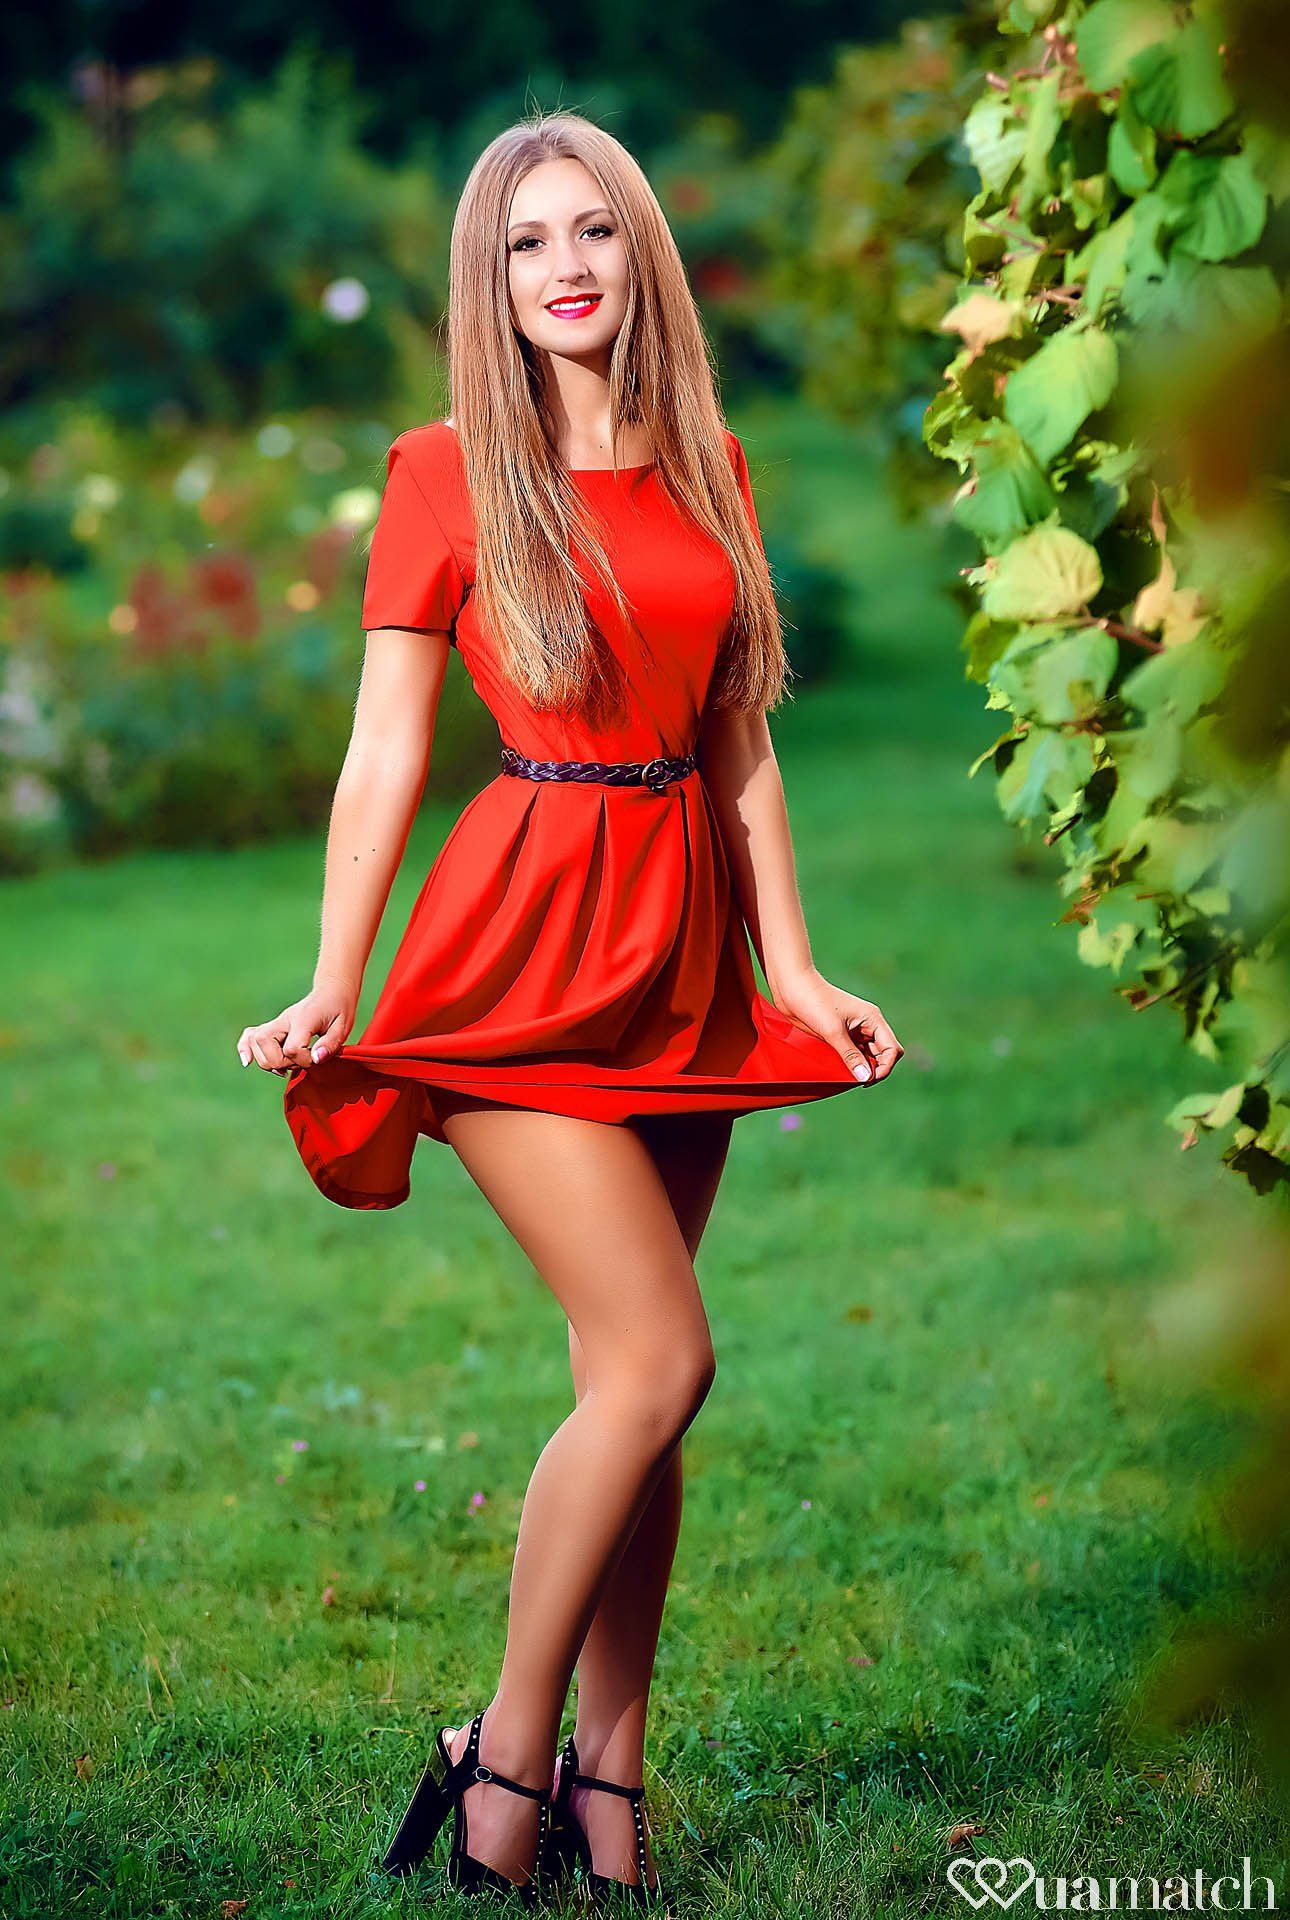 dating ukraine girl Russian and ukrainian girls and women seeking foreign men the best and largest of dating sites focusing on russian brides, russian women and russian.